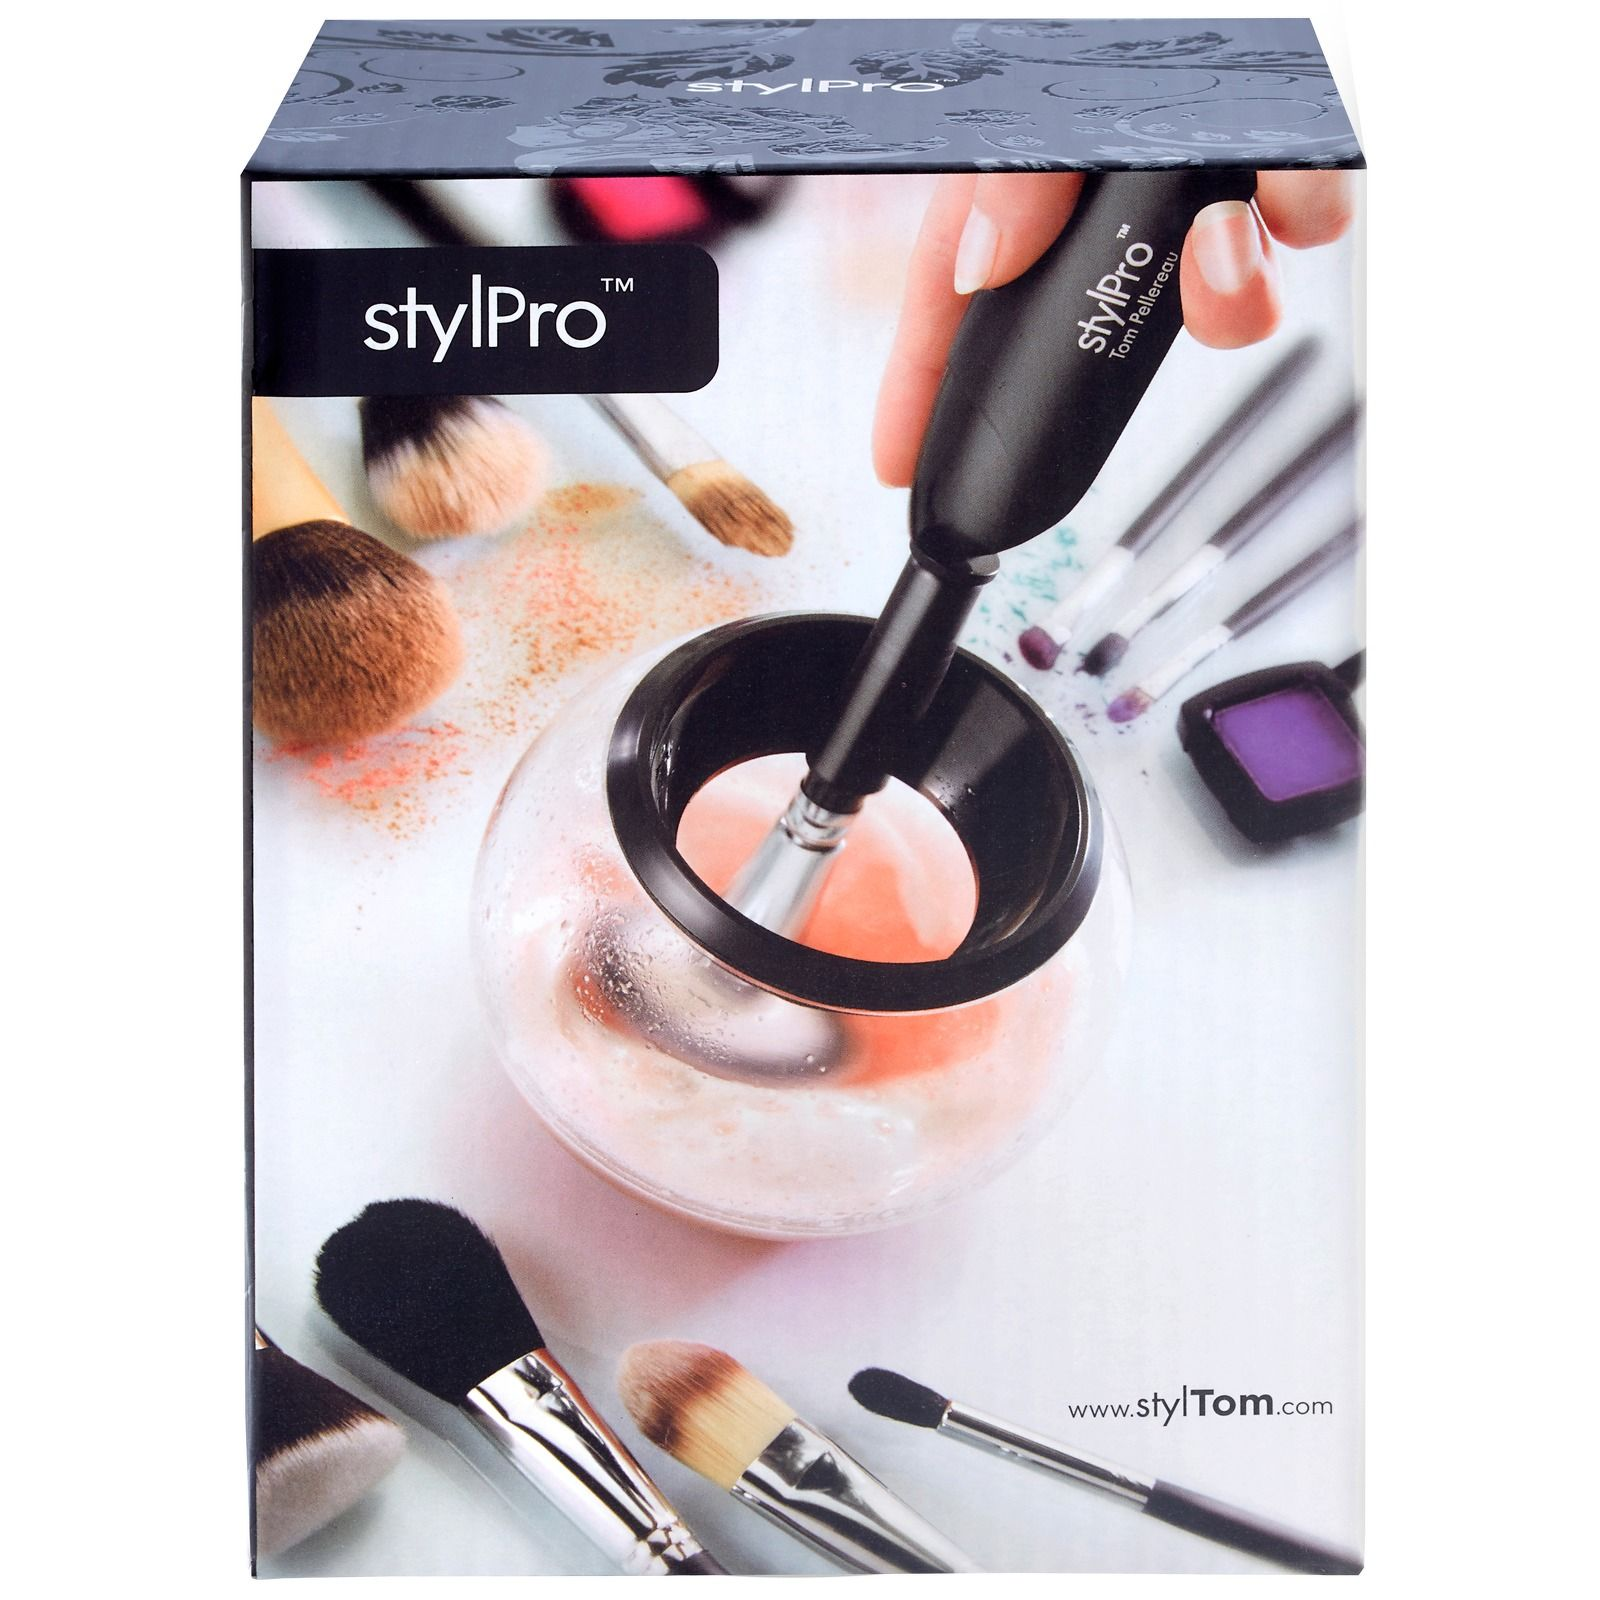 StylPro StylPro Makeup Brush Cleaner & Dryer With 2